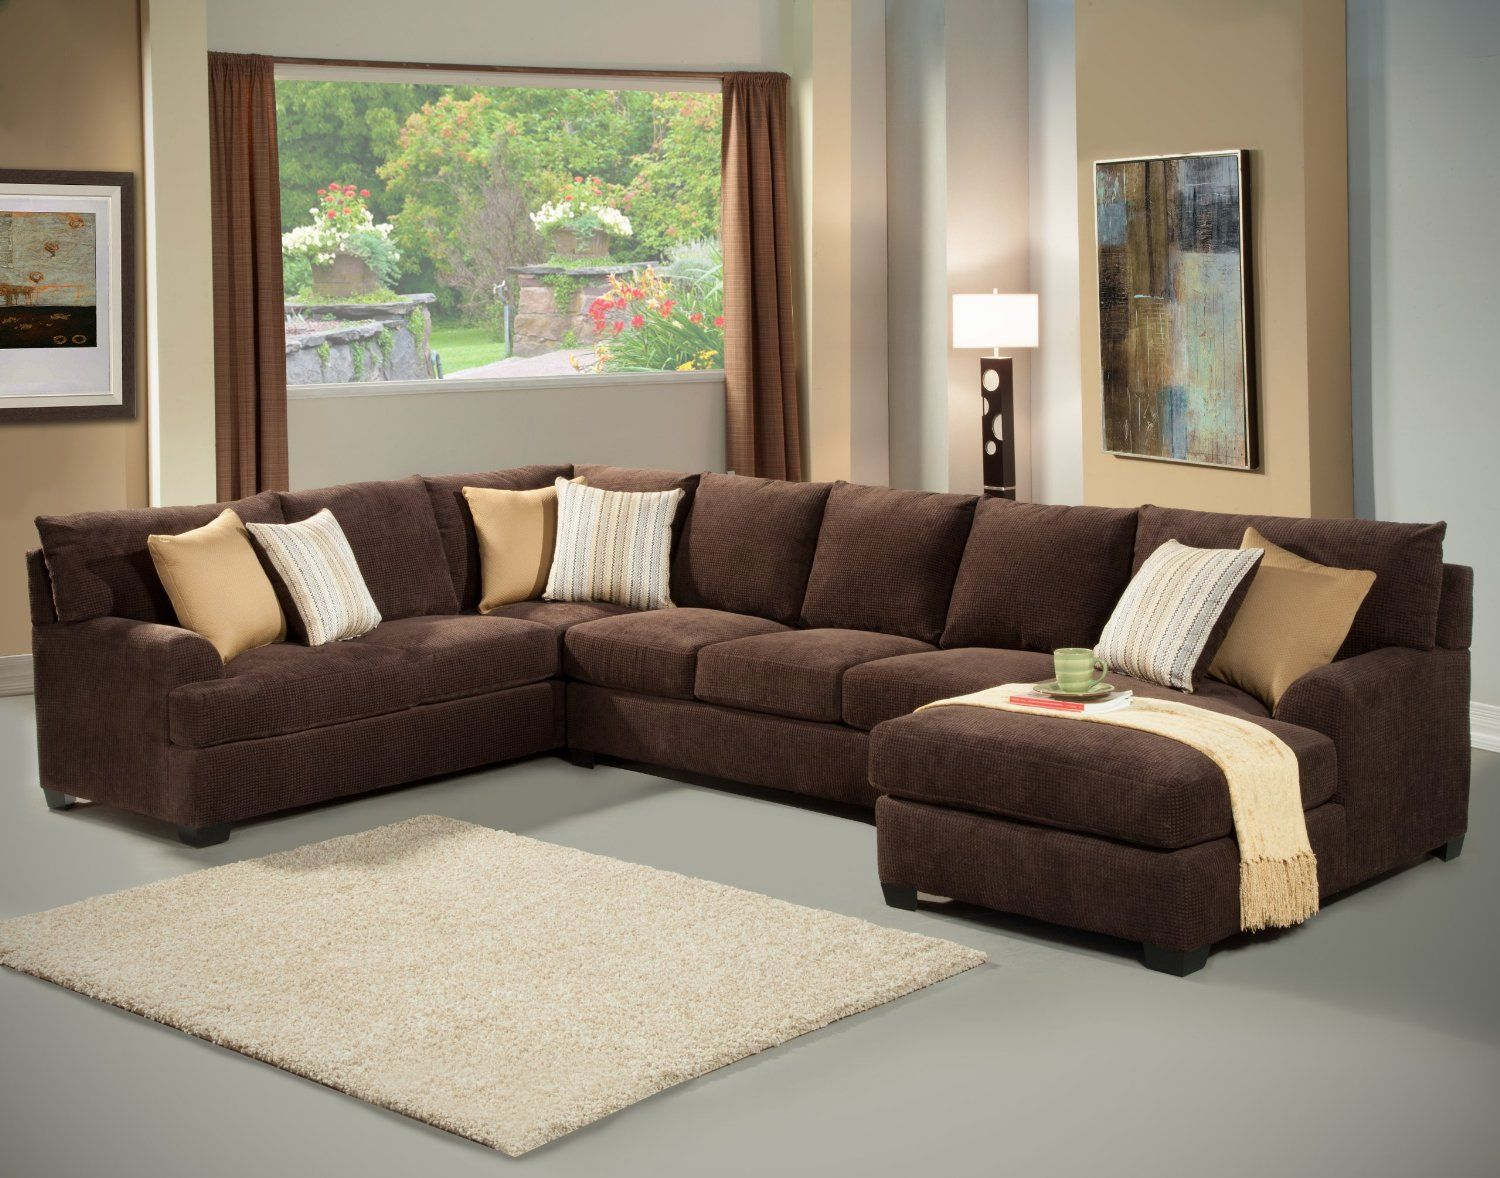 brown sectional sofa : brown sectional sofa with chaise - Sectionals, Sofas & Couches